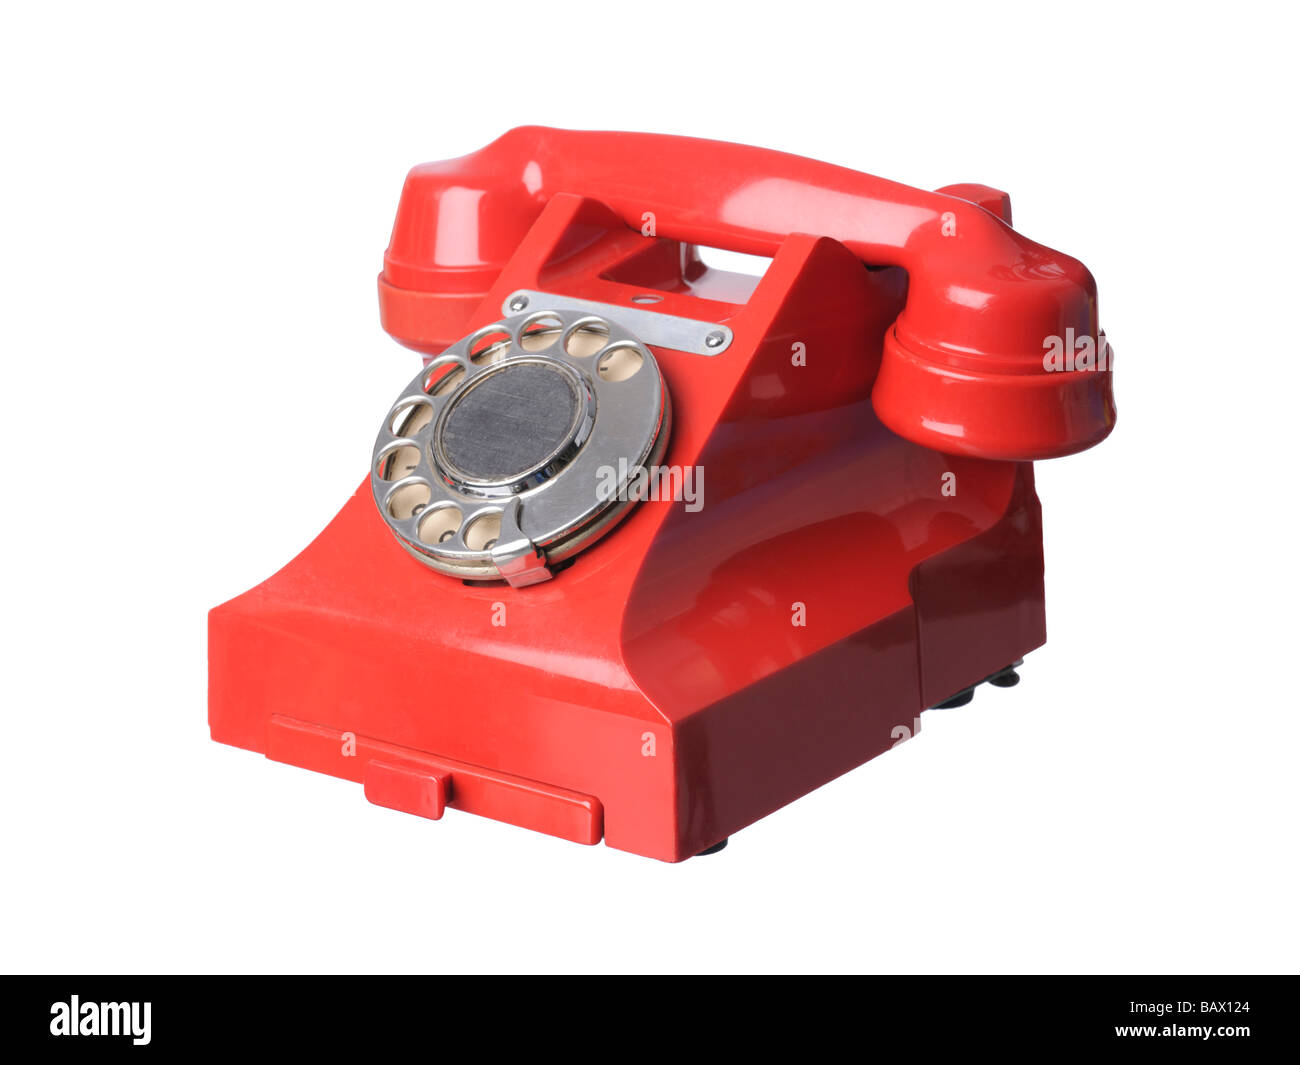 Vintage Red bakelite telephone - Stock Image